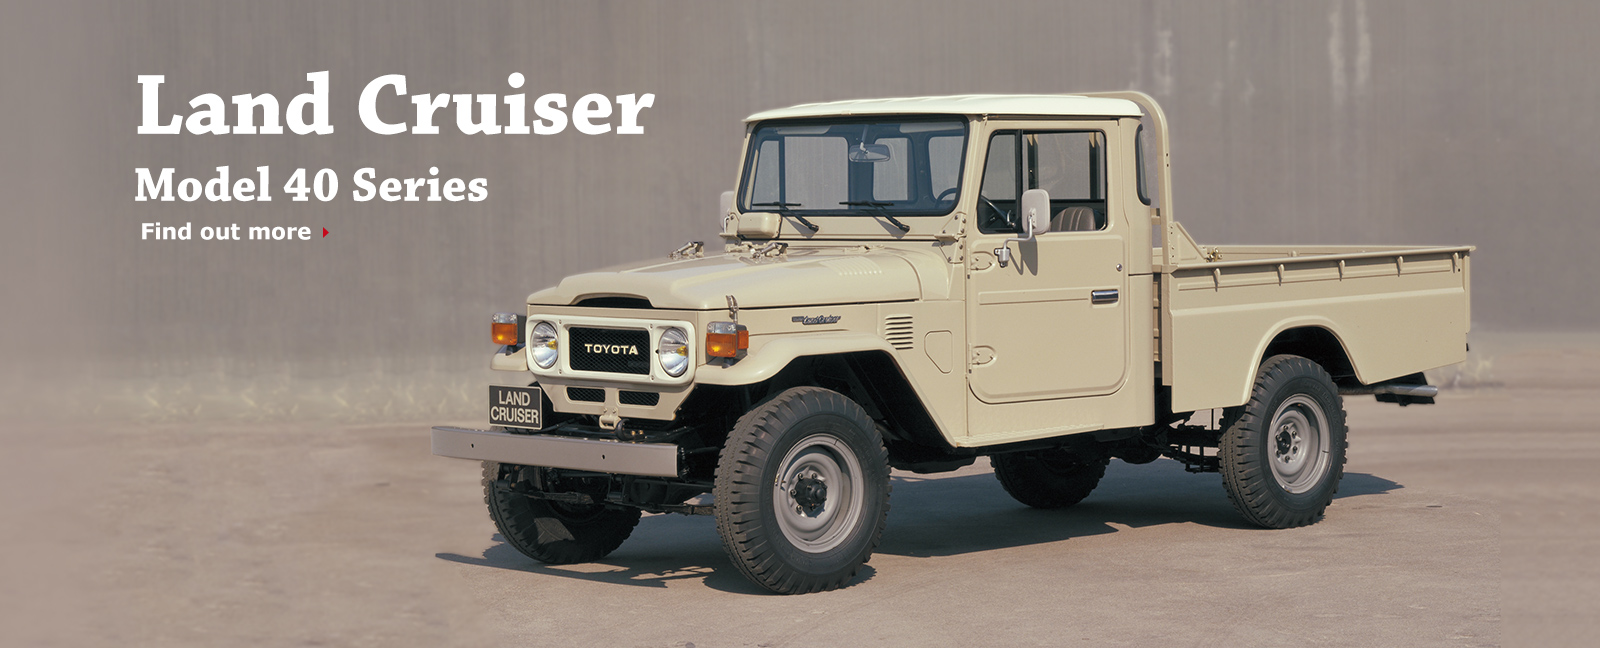 Land Cruiser Model 40 Series Find out more